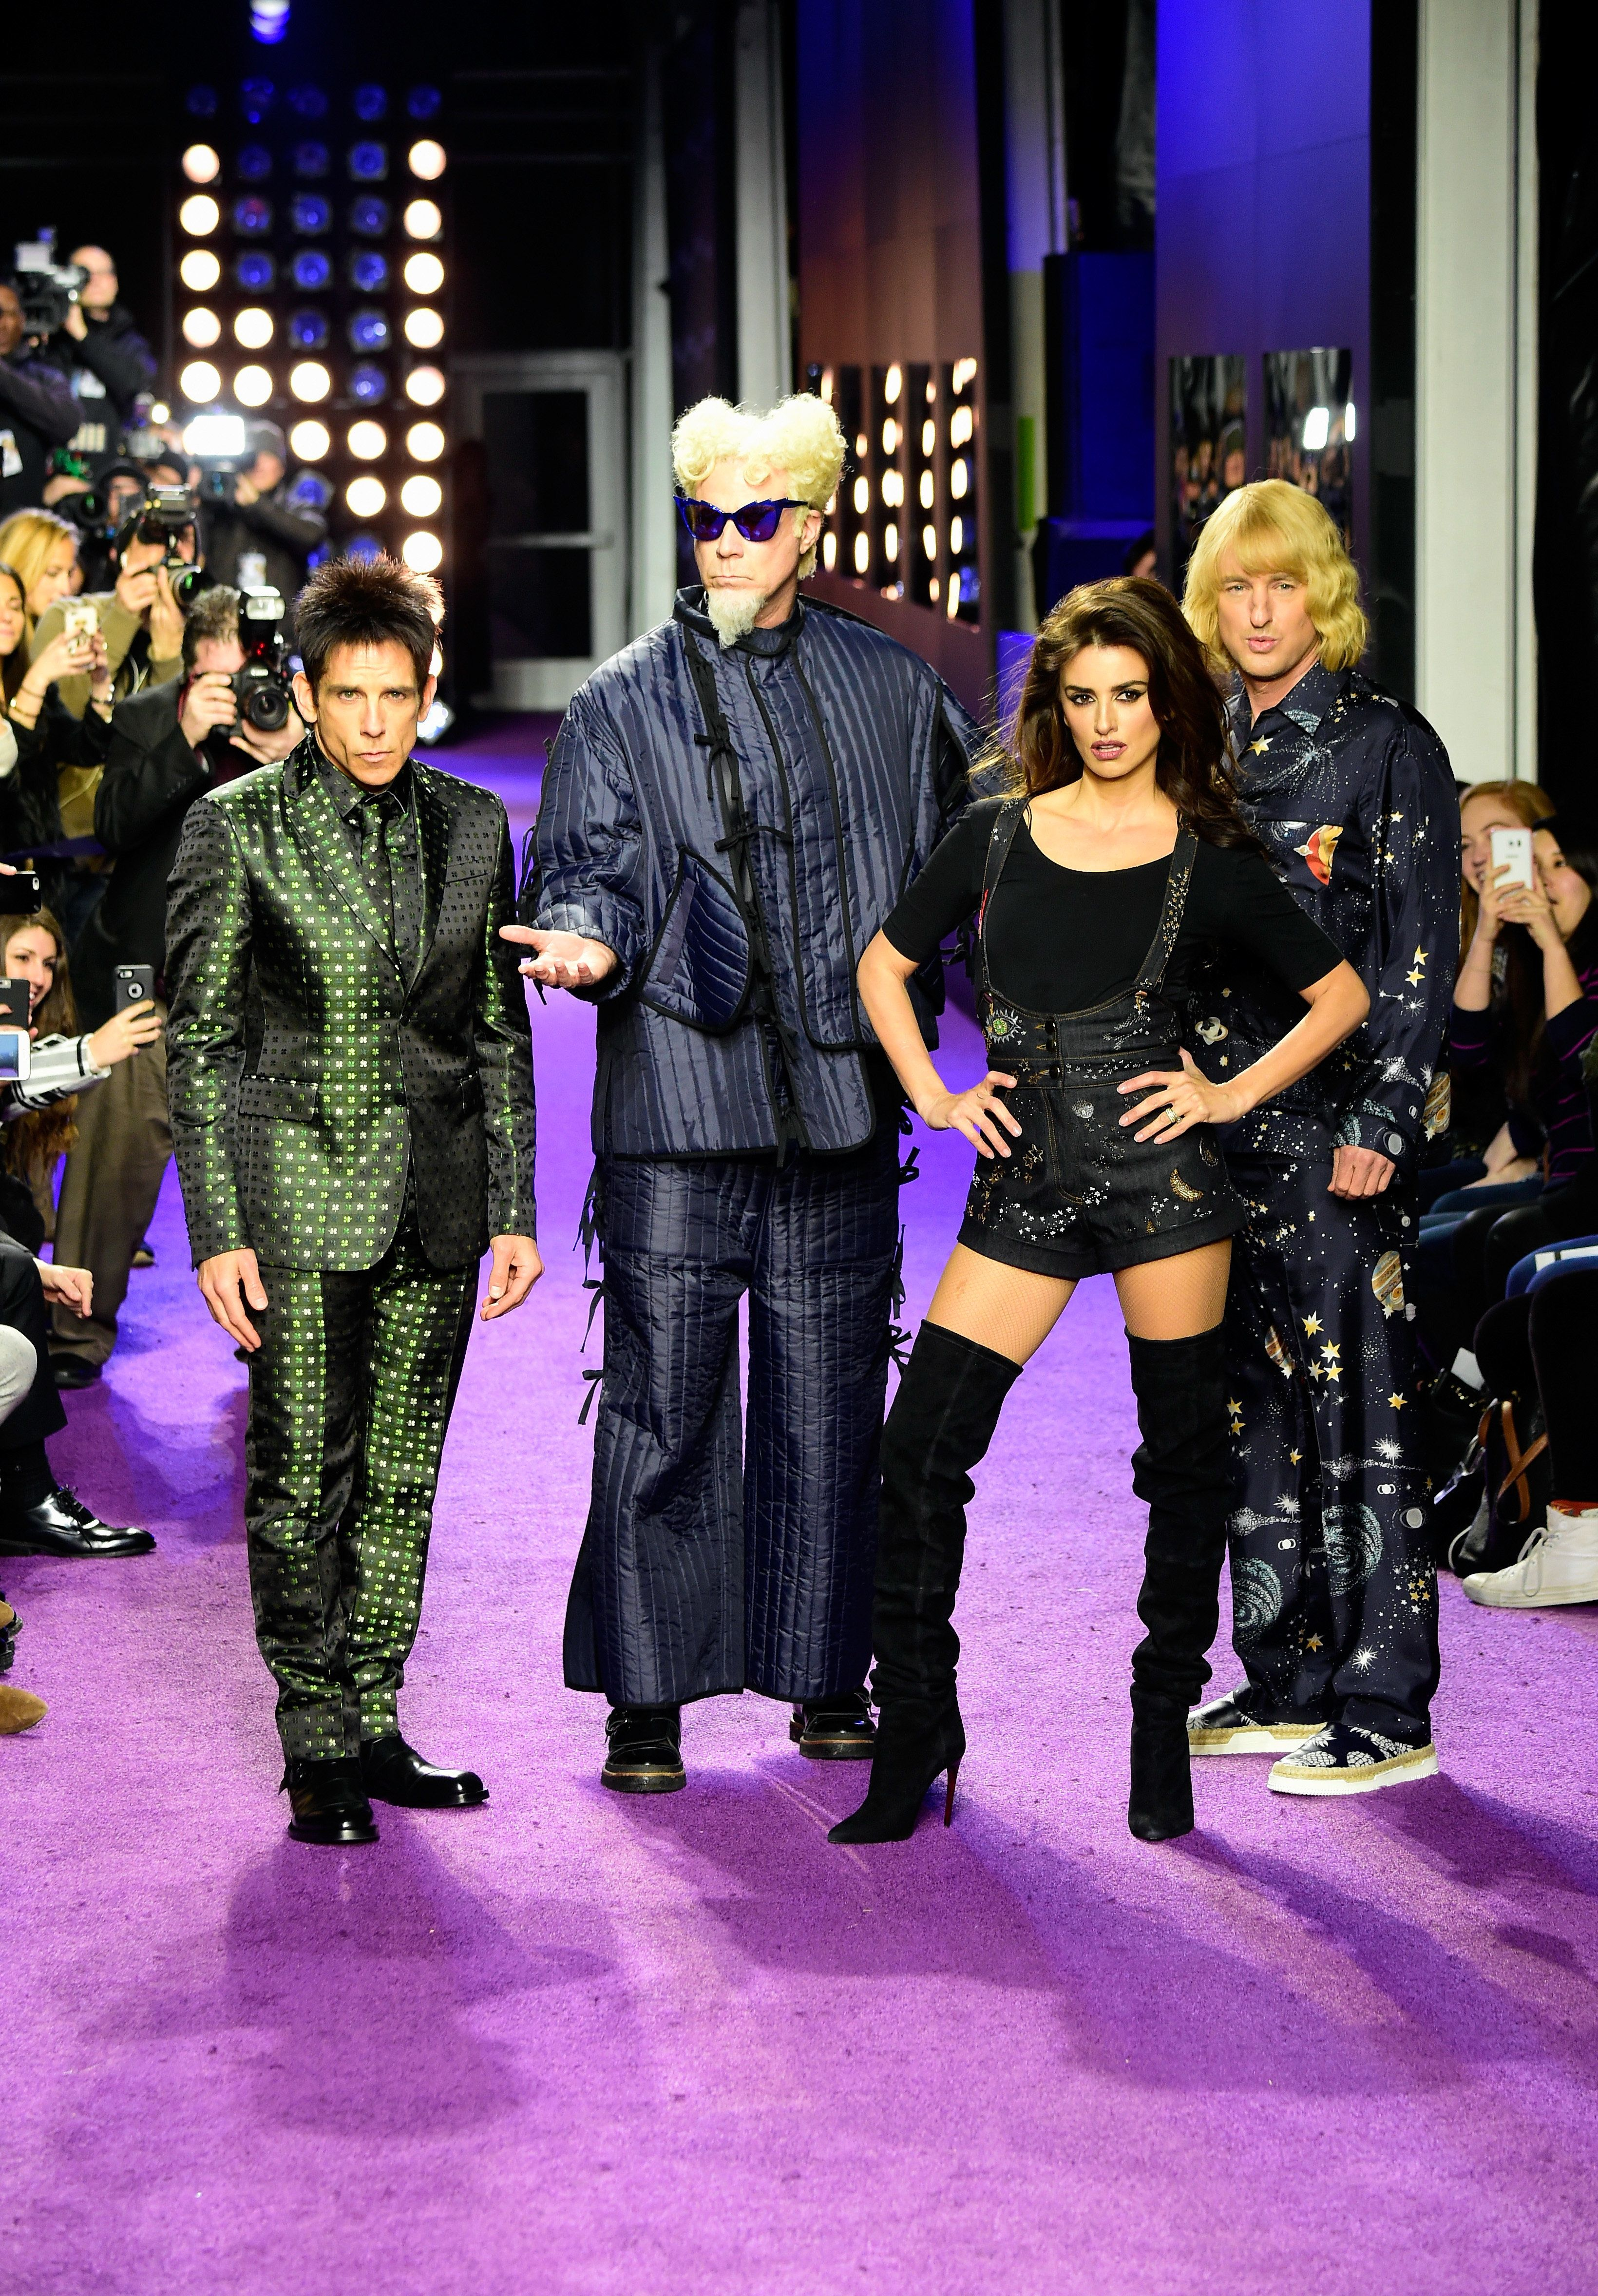 NEW YORK, NY - FEBRUARY 09:  (L-R) Actors Ben Stiller, Will Ferrell, Penelope Cruz and  Owen Wilson walk the runway during the 'Zoolander No. 2' World Premiere at Alice Tully Hall on February 9, 2016 in New York City.  (Photo by Frazer Harrison/Getty Images for Paramount)